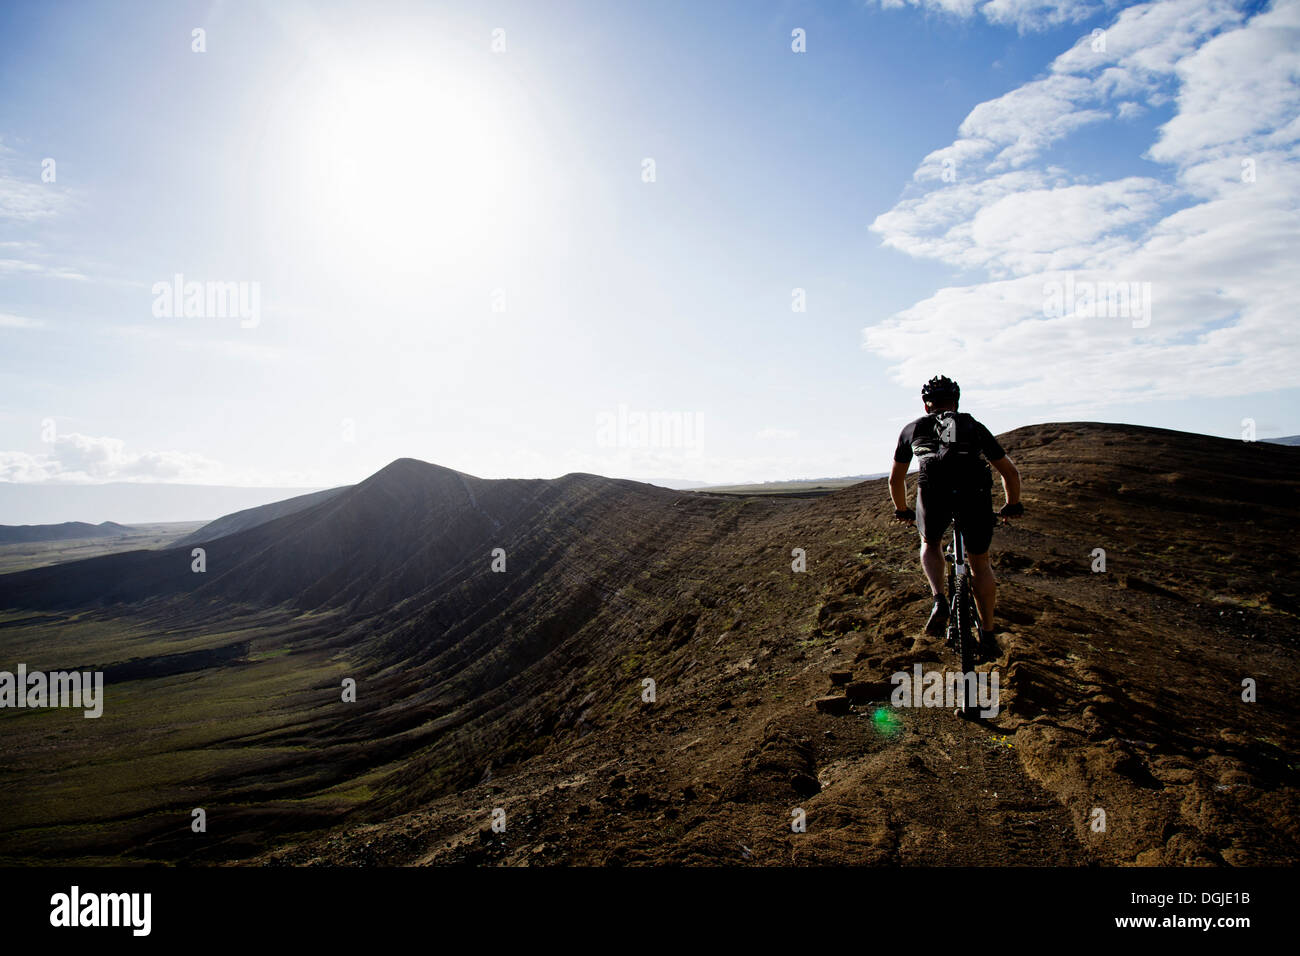 Man mountain biking, Caldera del Cuchillo, Lanzarote - Stock Image